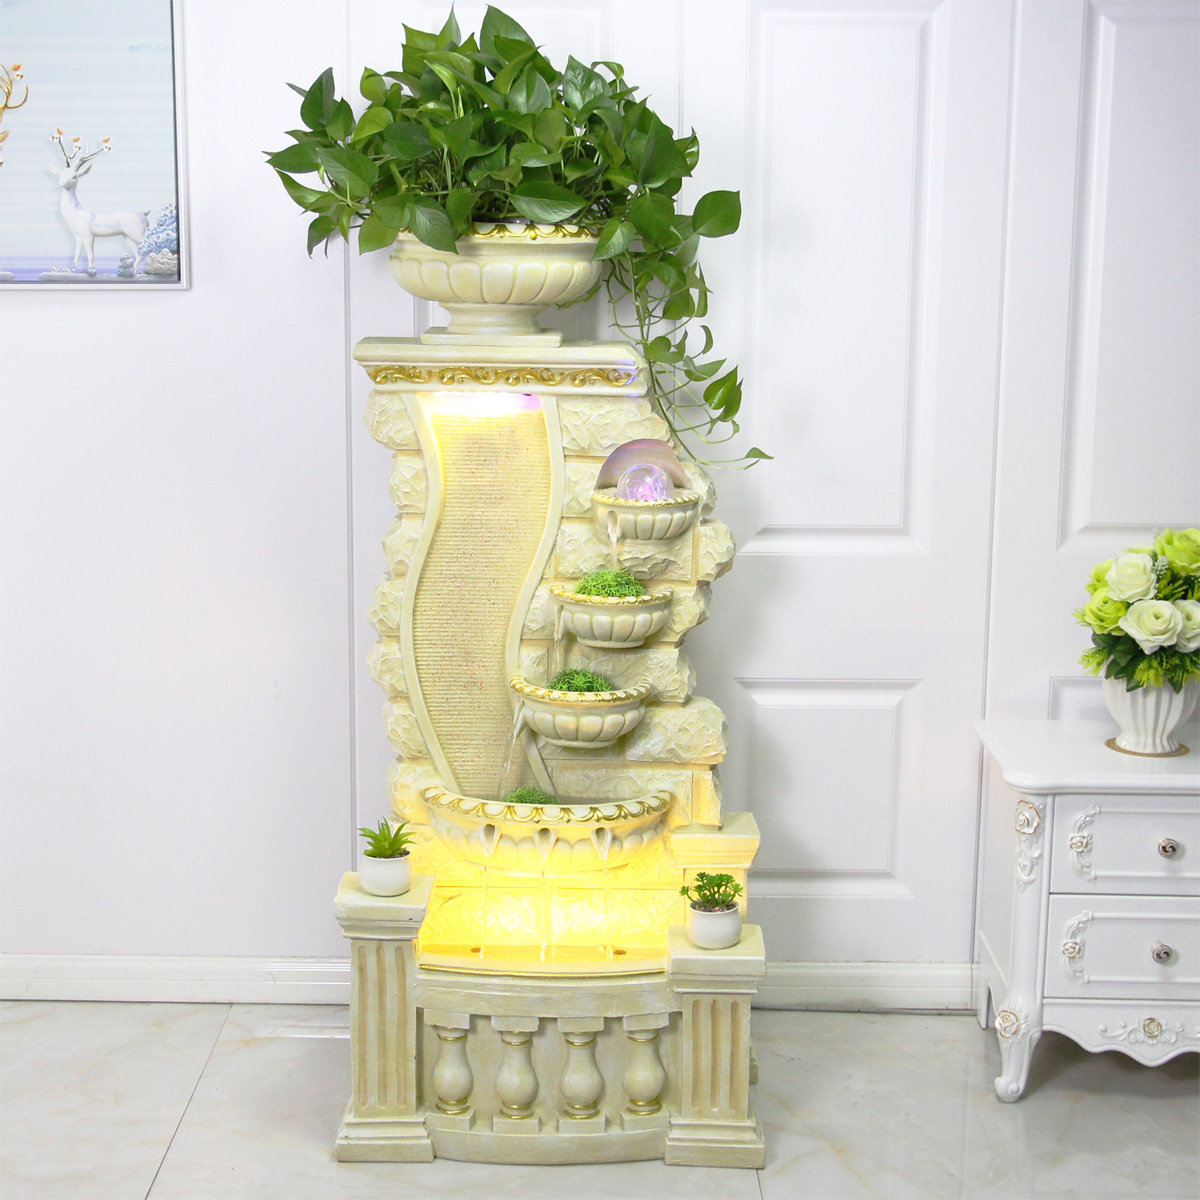 Large European style Floor Water Fountain Fish Pond Decoration Home Decoration Ornaments Gifts European Flower Pot Fish Tank